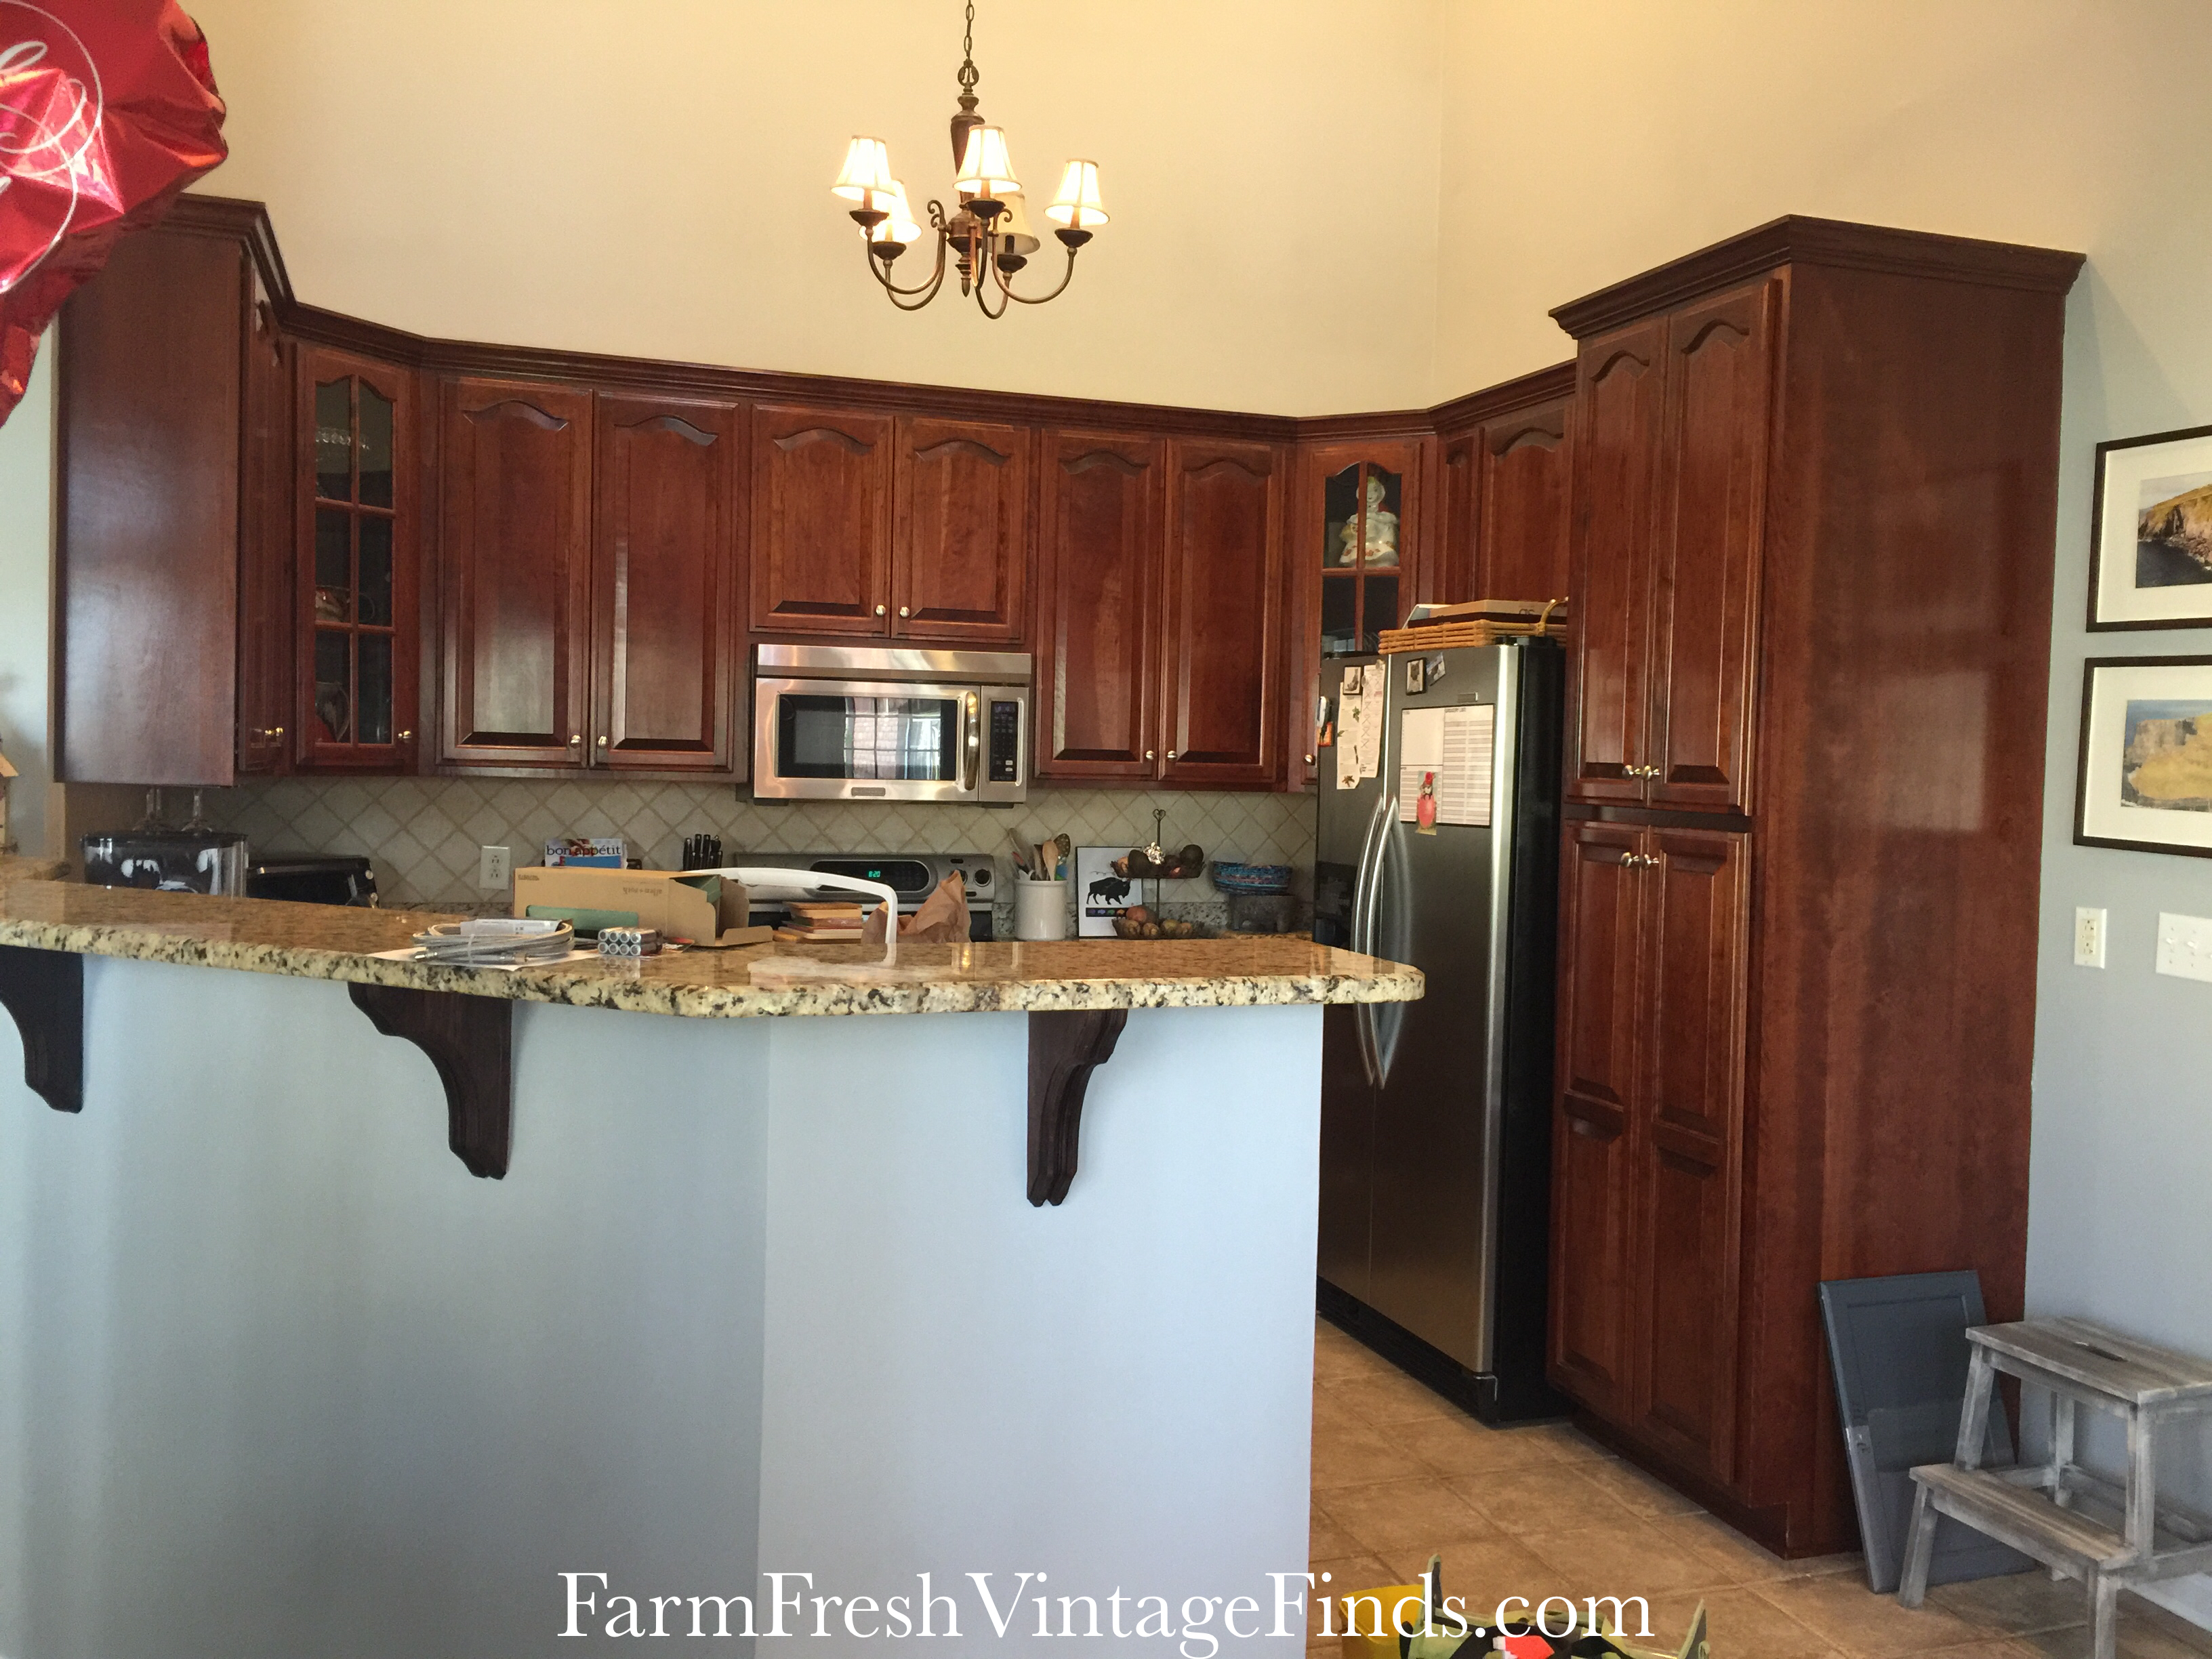 Painting Kitchen Cabinets With General Finishes Milk Paint Farm - What's the best paint to use for kitchen cabinets